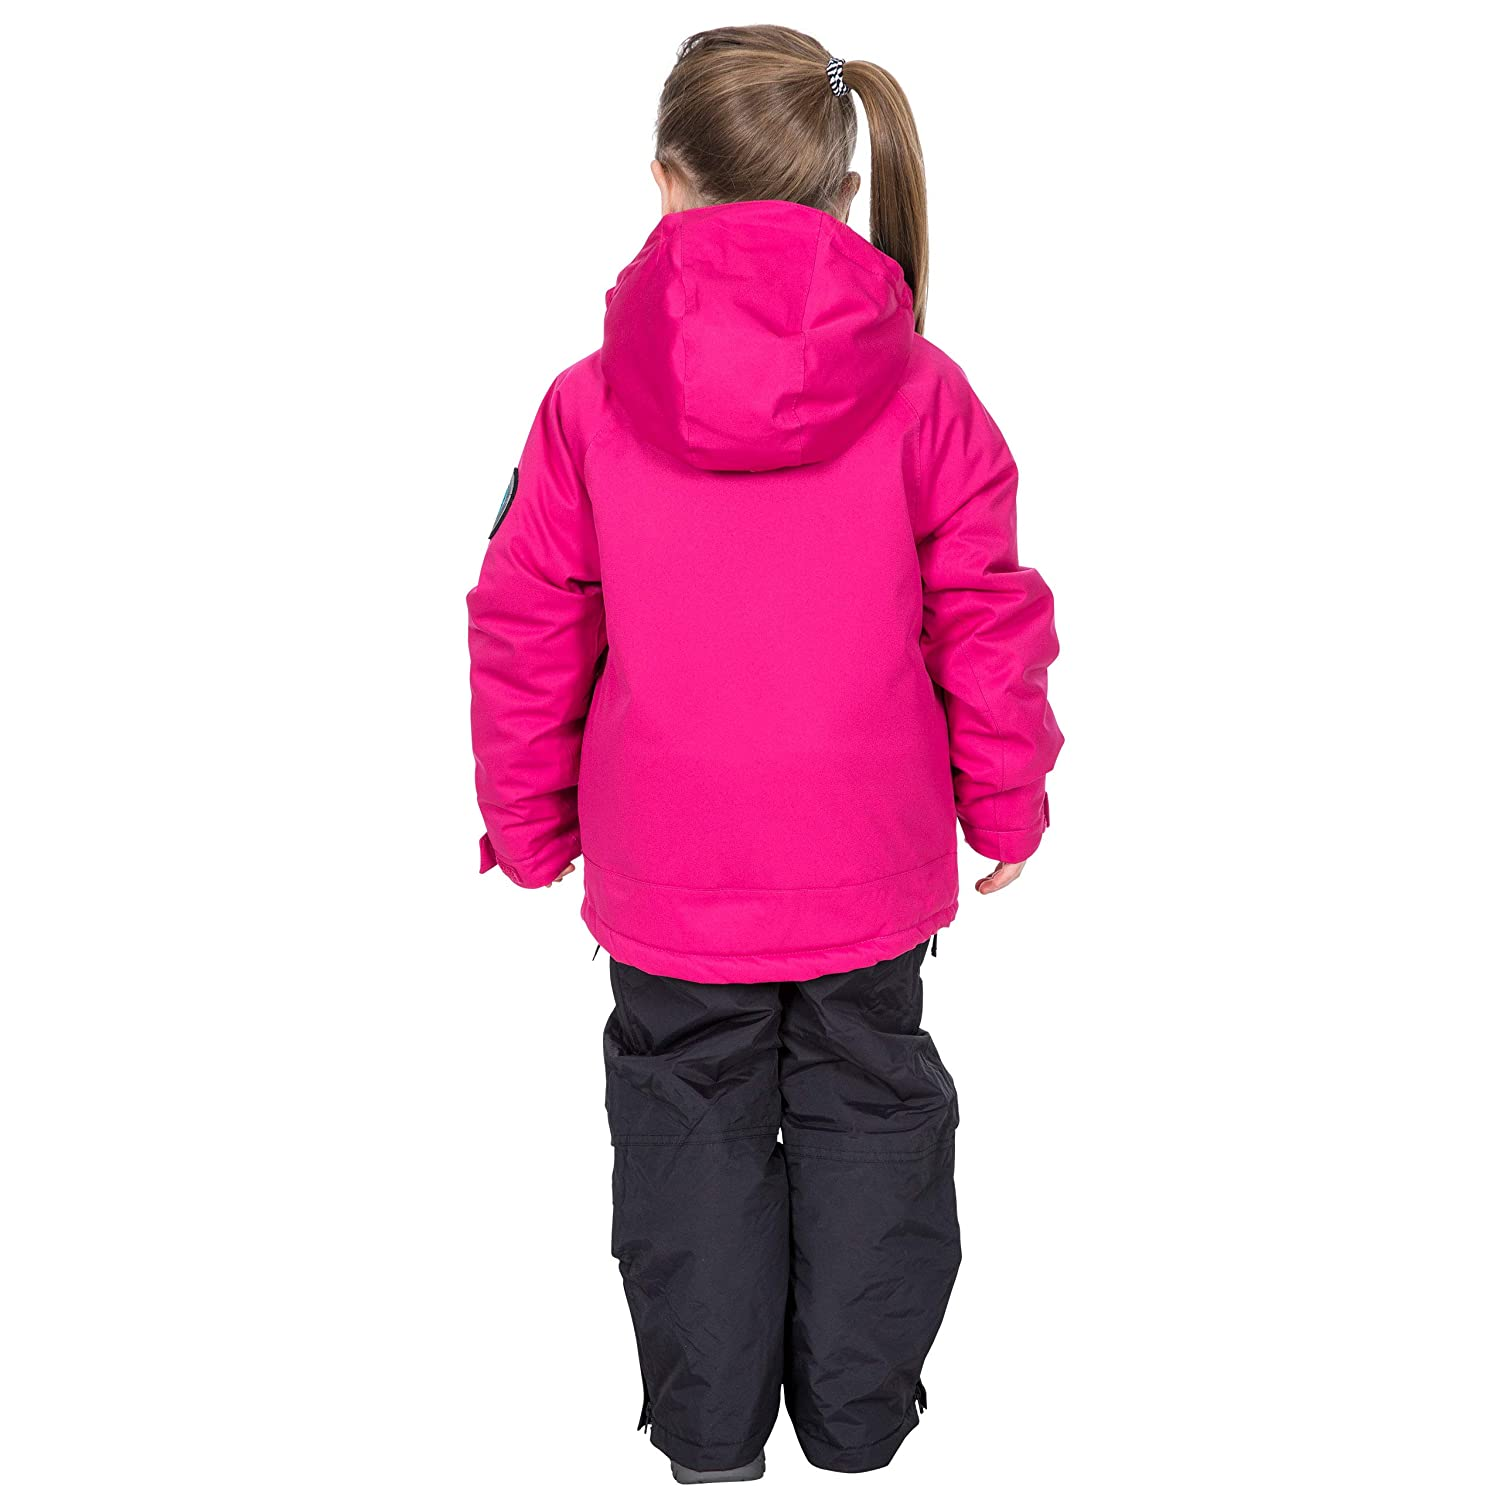 Goggle Pocket /& Ski Pass Sleeve Pocket Trespass Childrens Luwin Waterproof Ski Jacket With Recco Avalance Rescue System Removable Hood